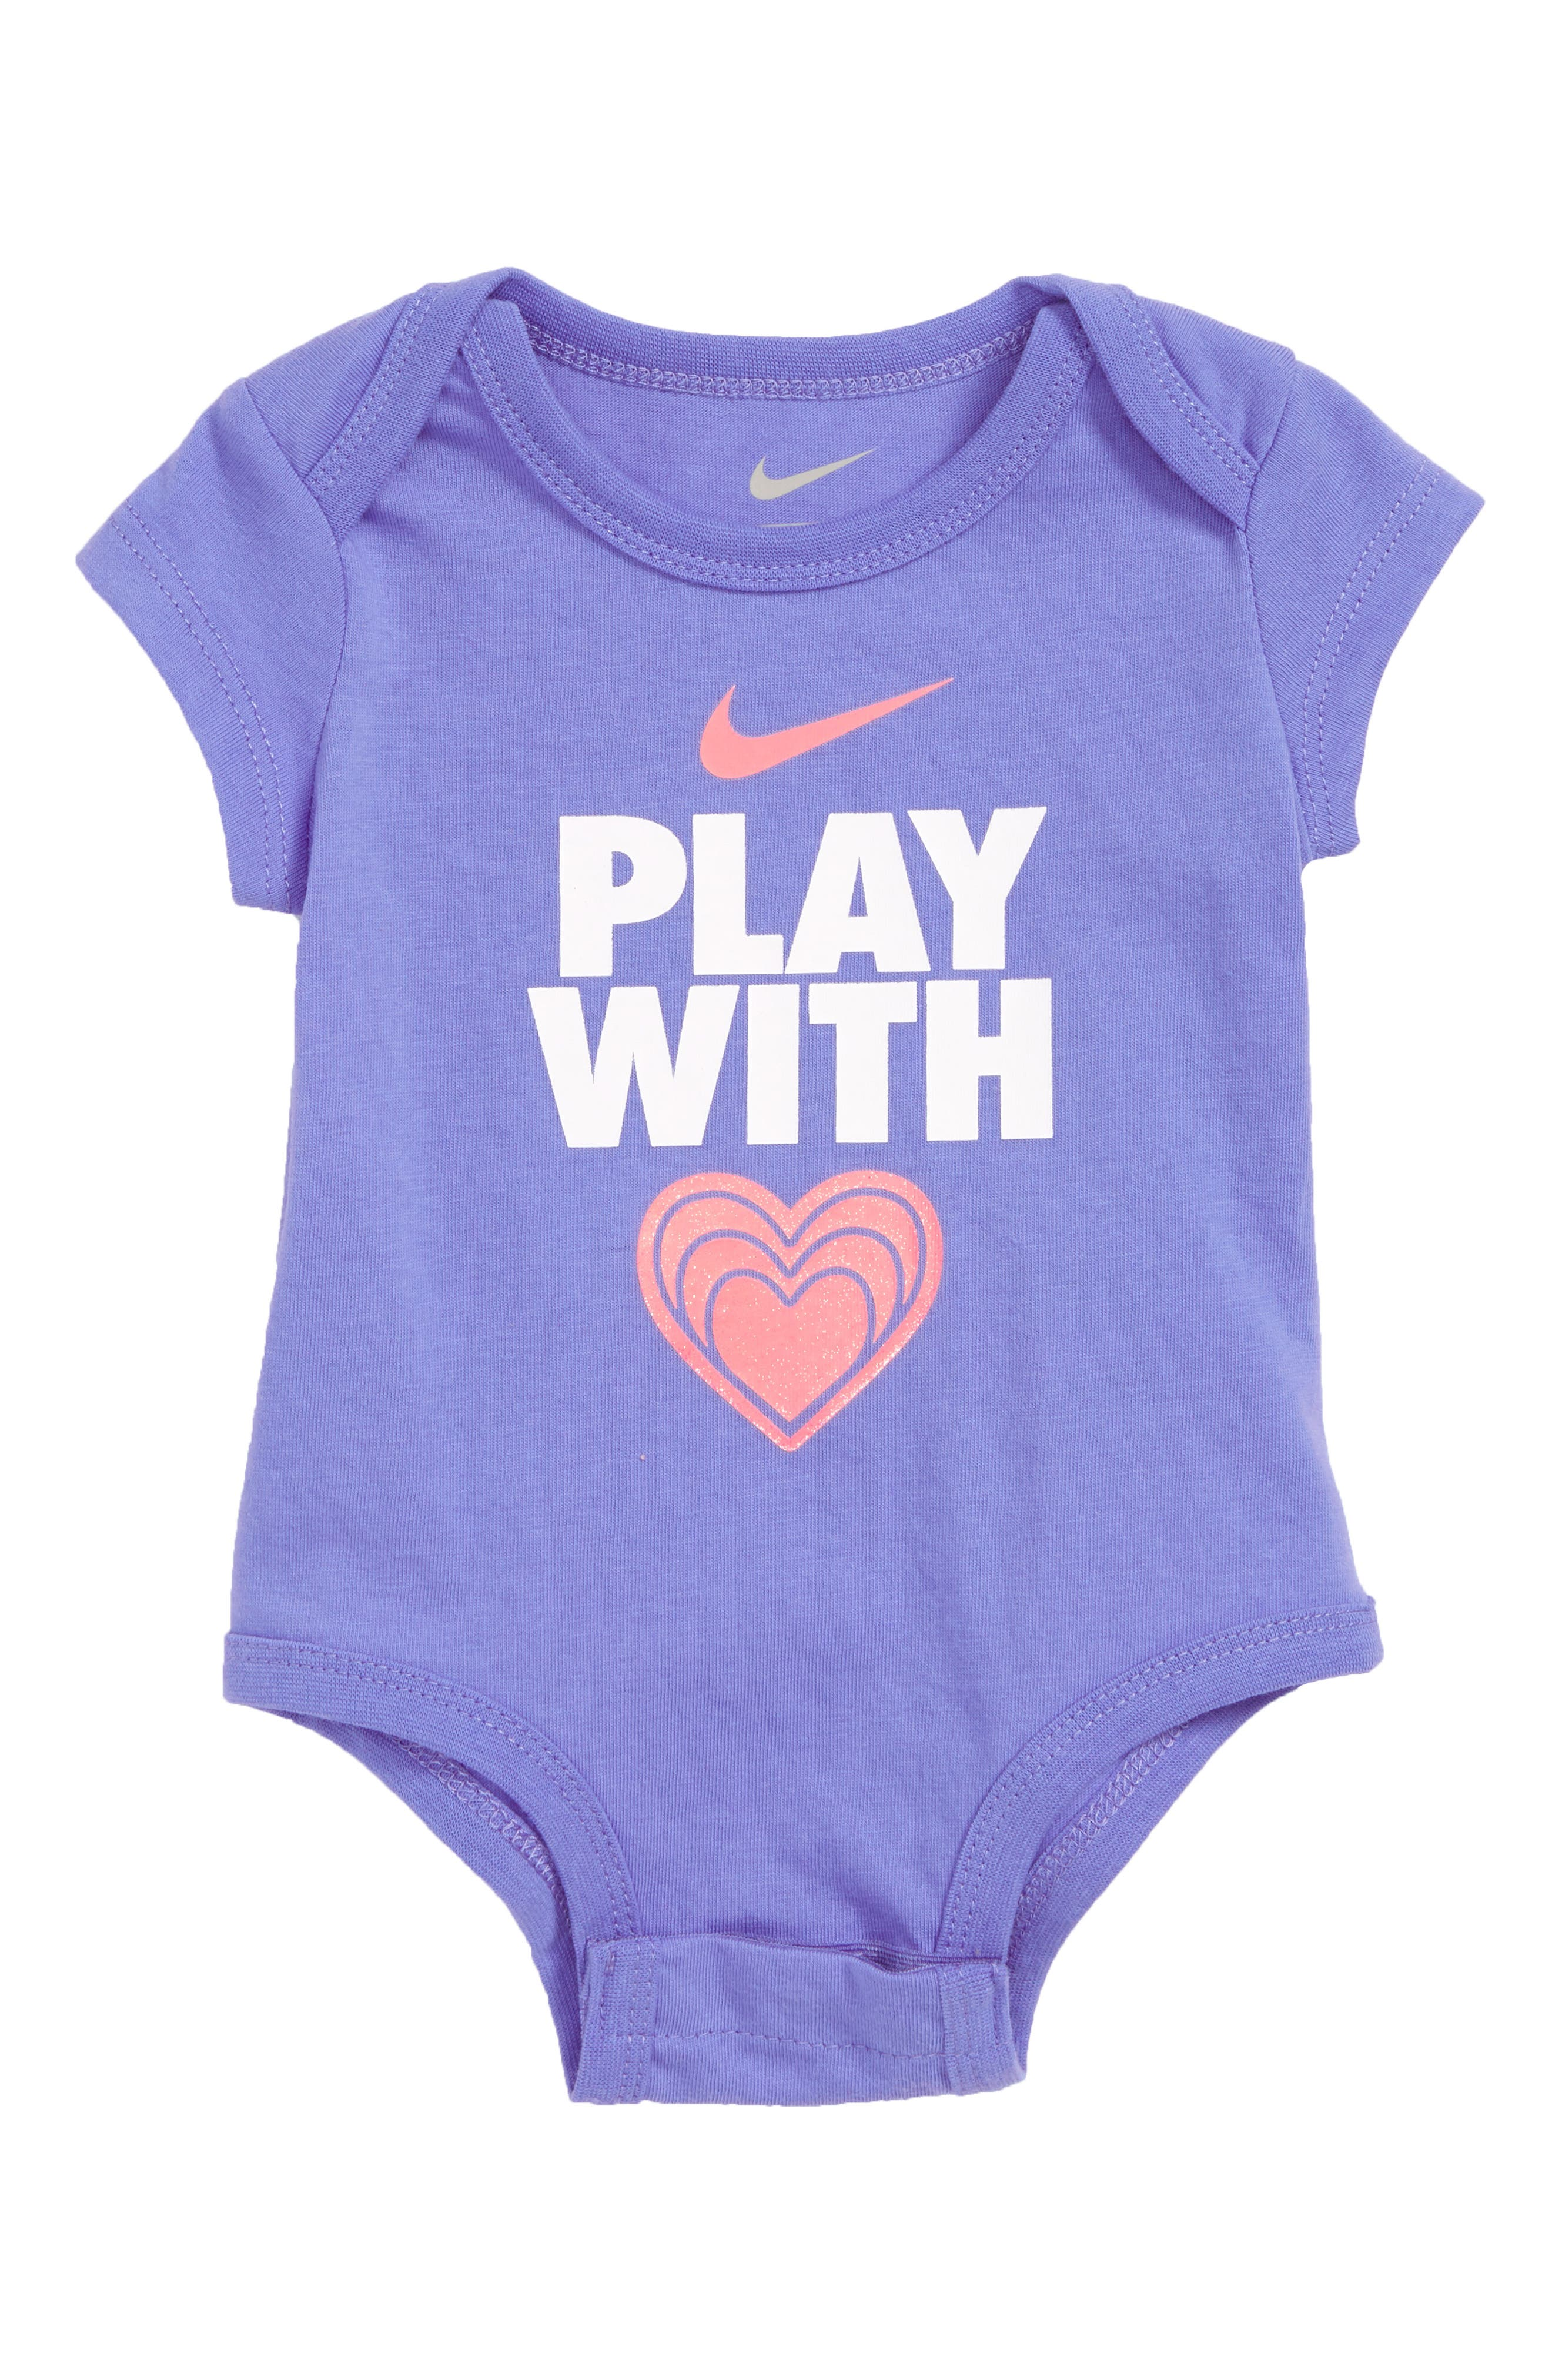 Play with Heart Bodysuit,                             Main thumbnail 1, color,                             451